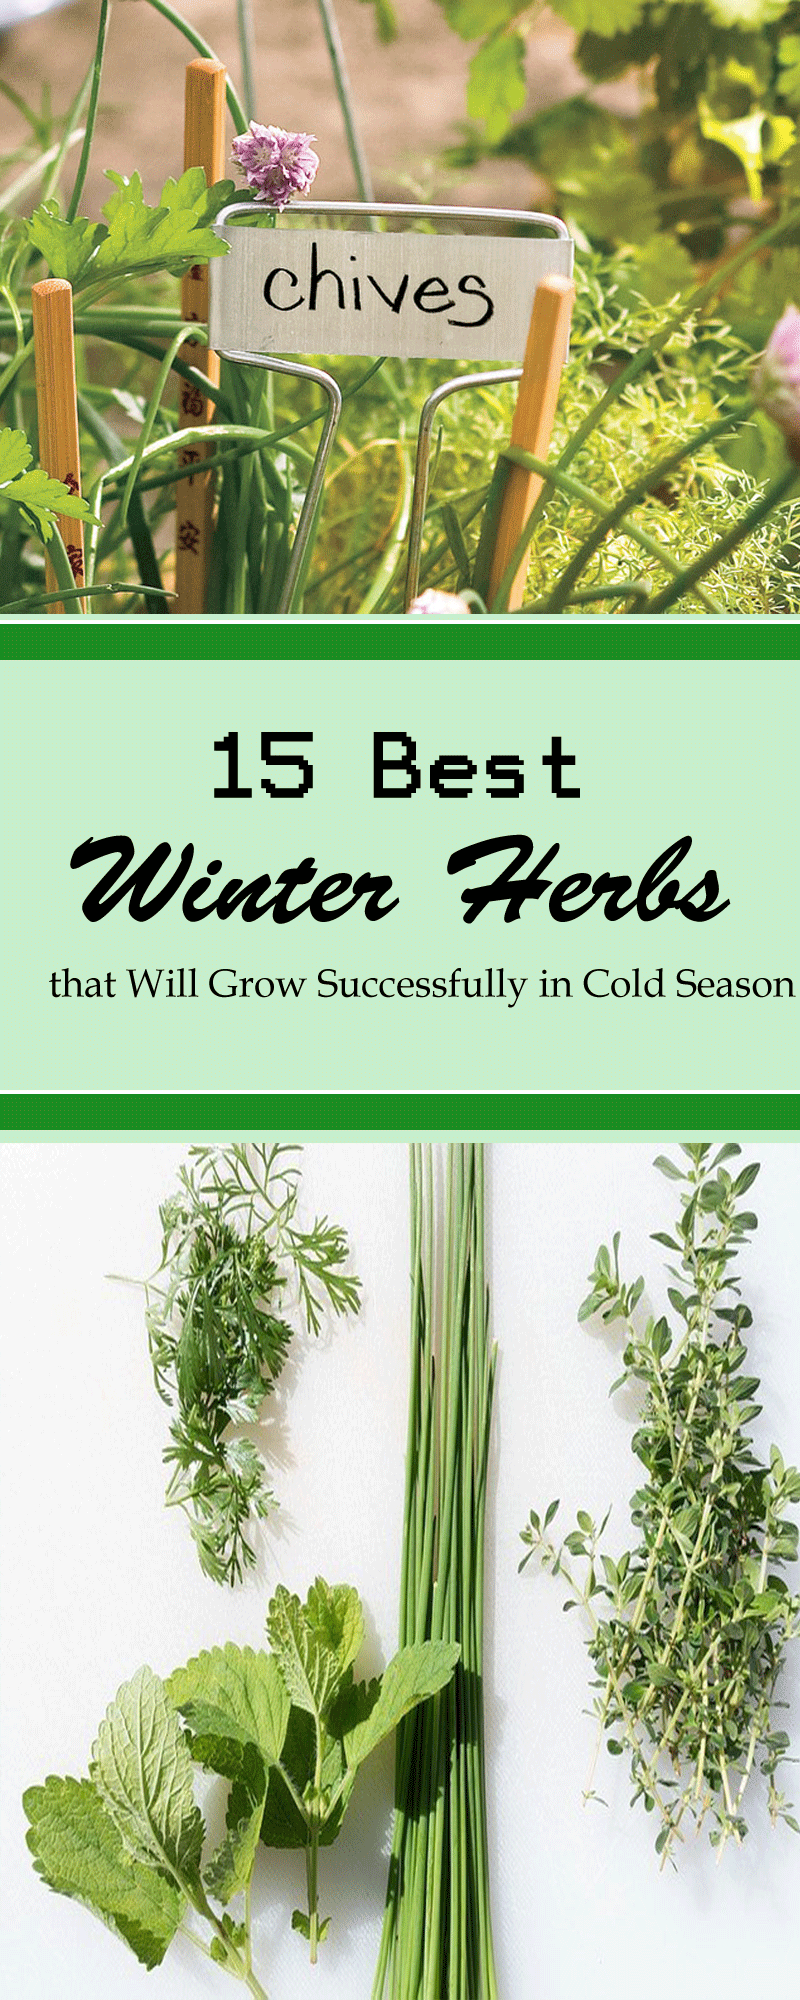 15 best winter herbs that will grow successfully in cold season